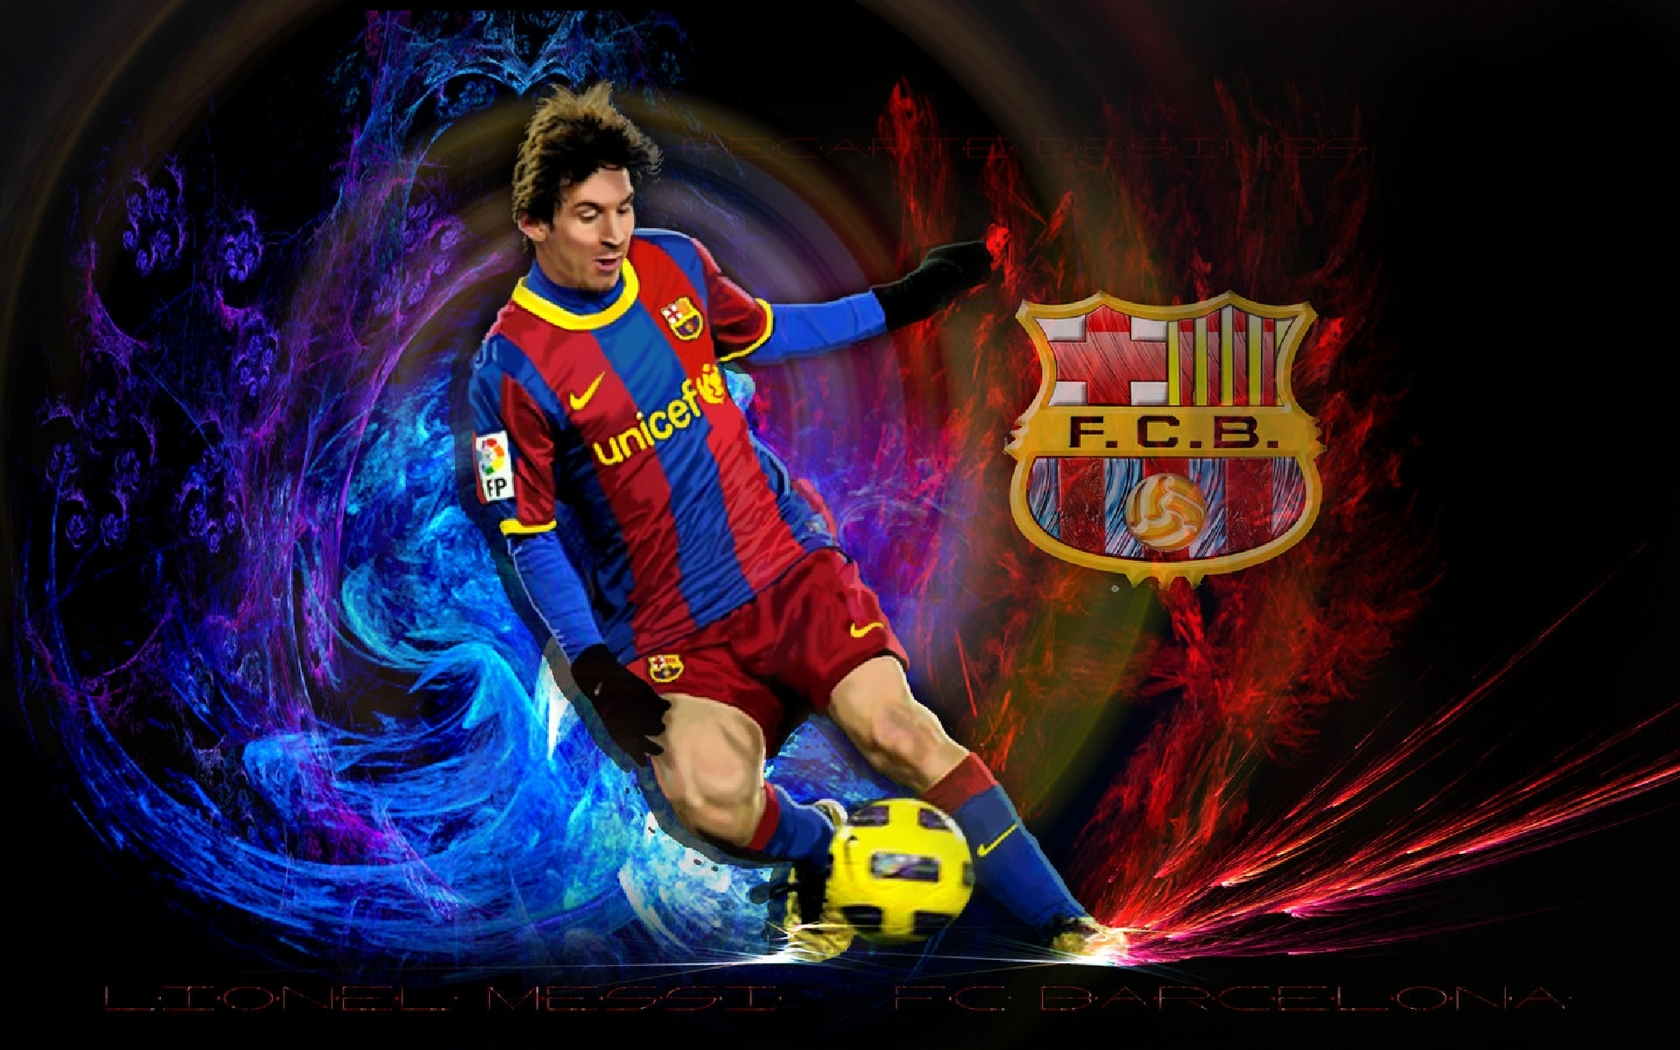 Cool-Soccer-Ball-1920×1080-Cool-Soccer-Pictures-Adorable-W-wallpaper-wpc5803708